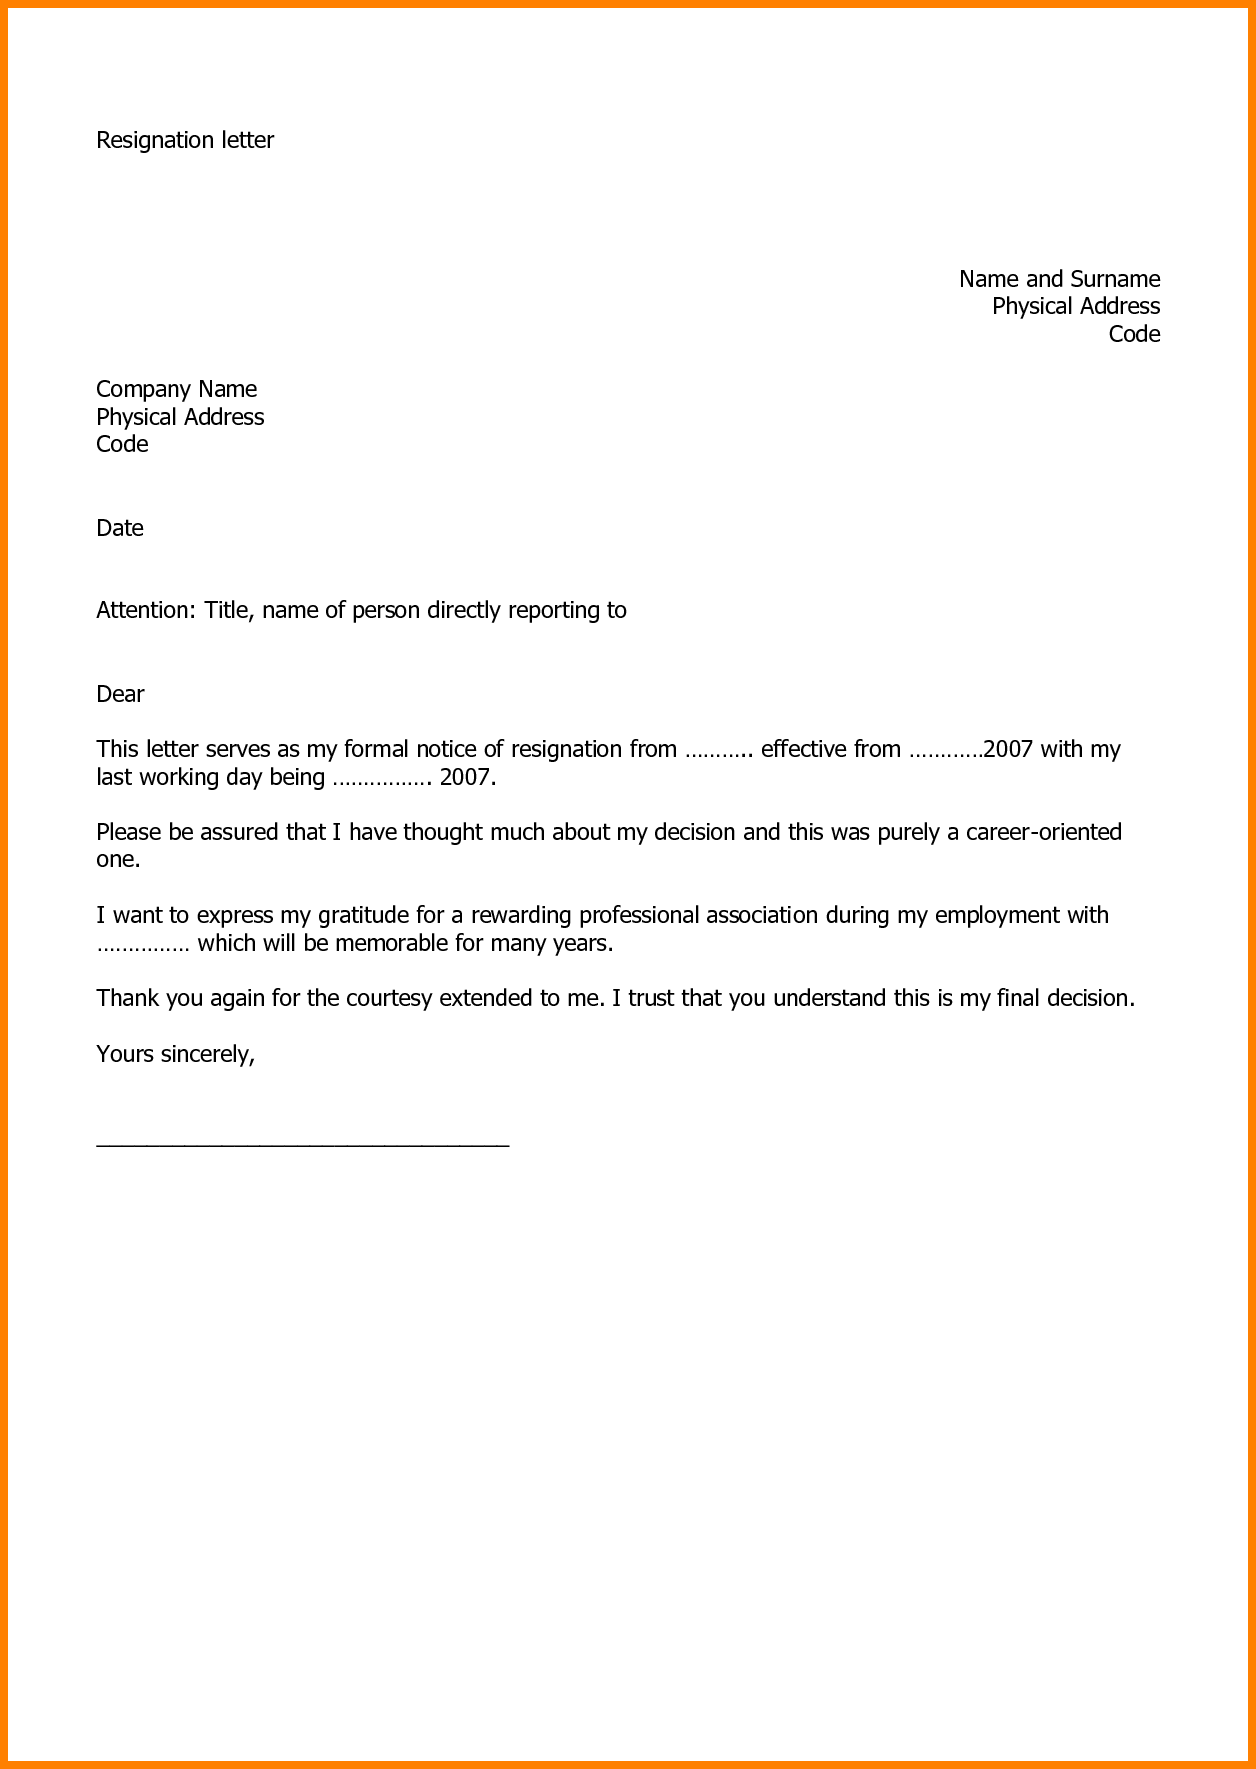 Letter Format For Job Resignation Resignation Letter Example.png (1256×1769)